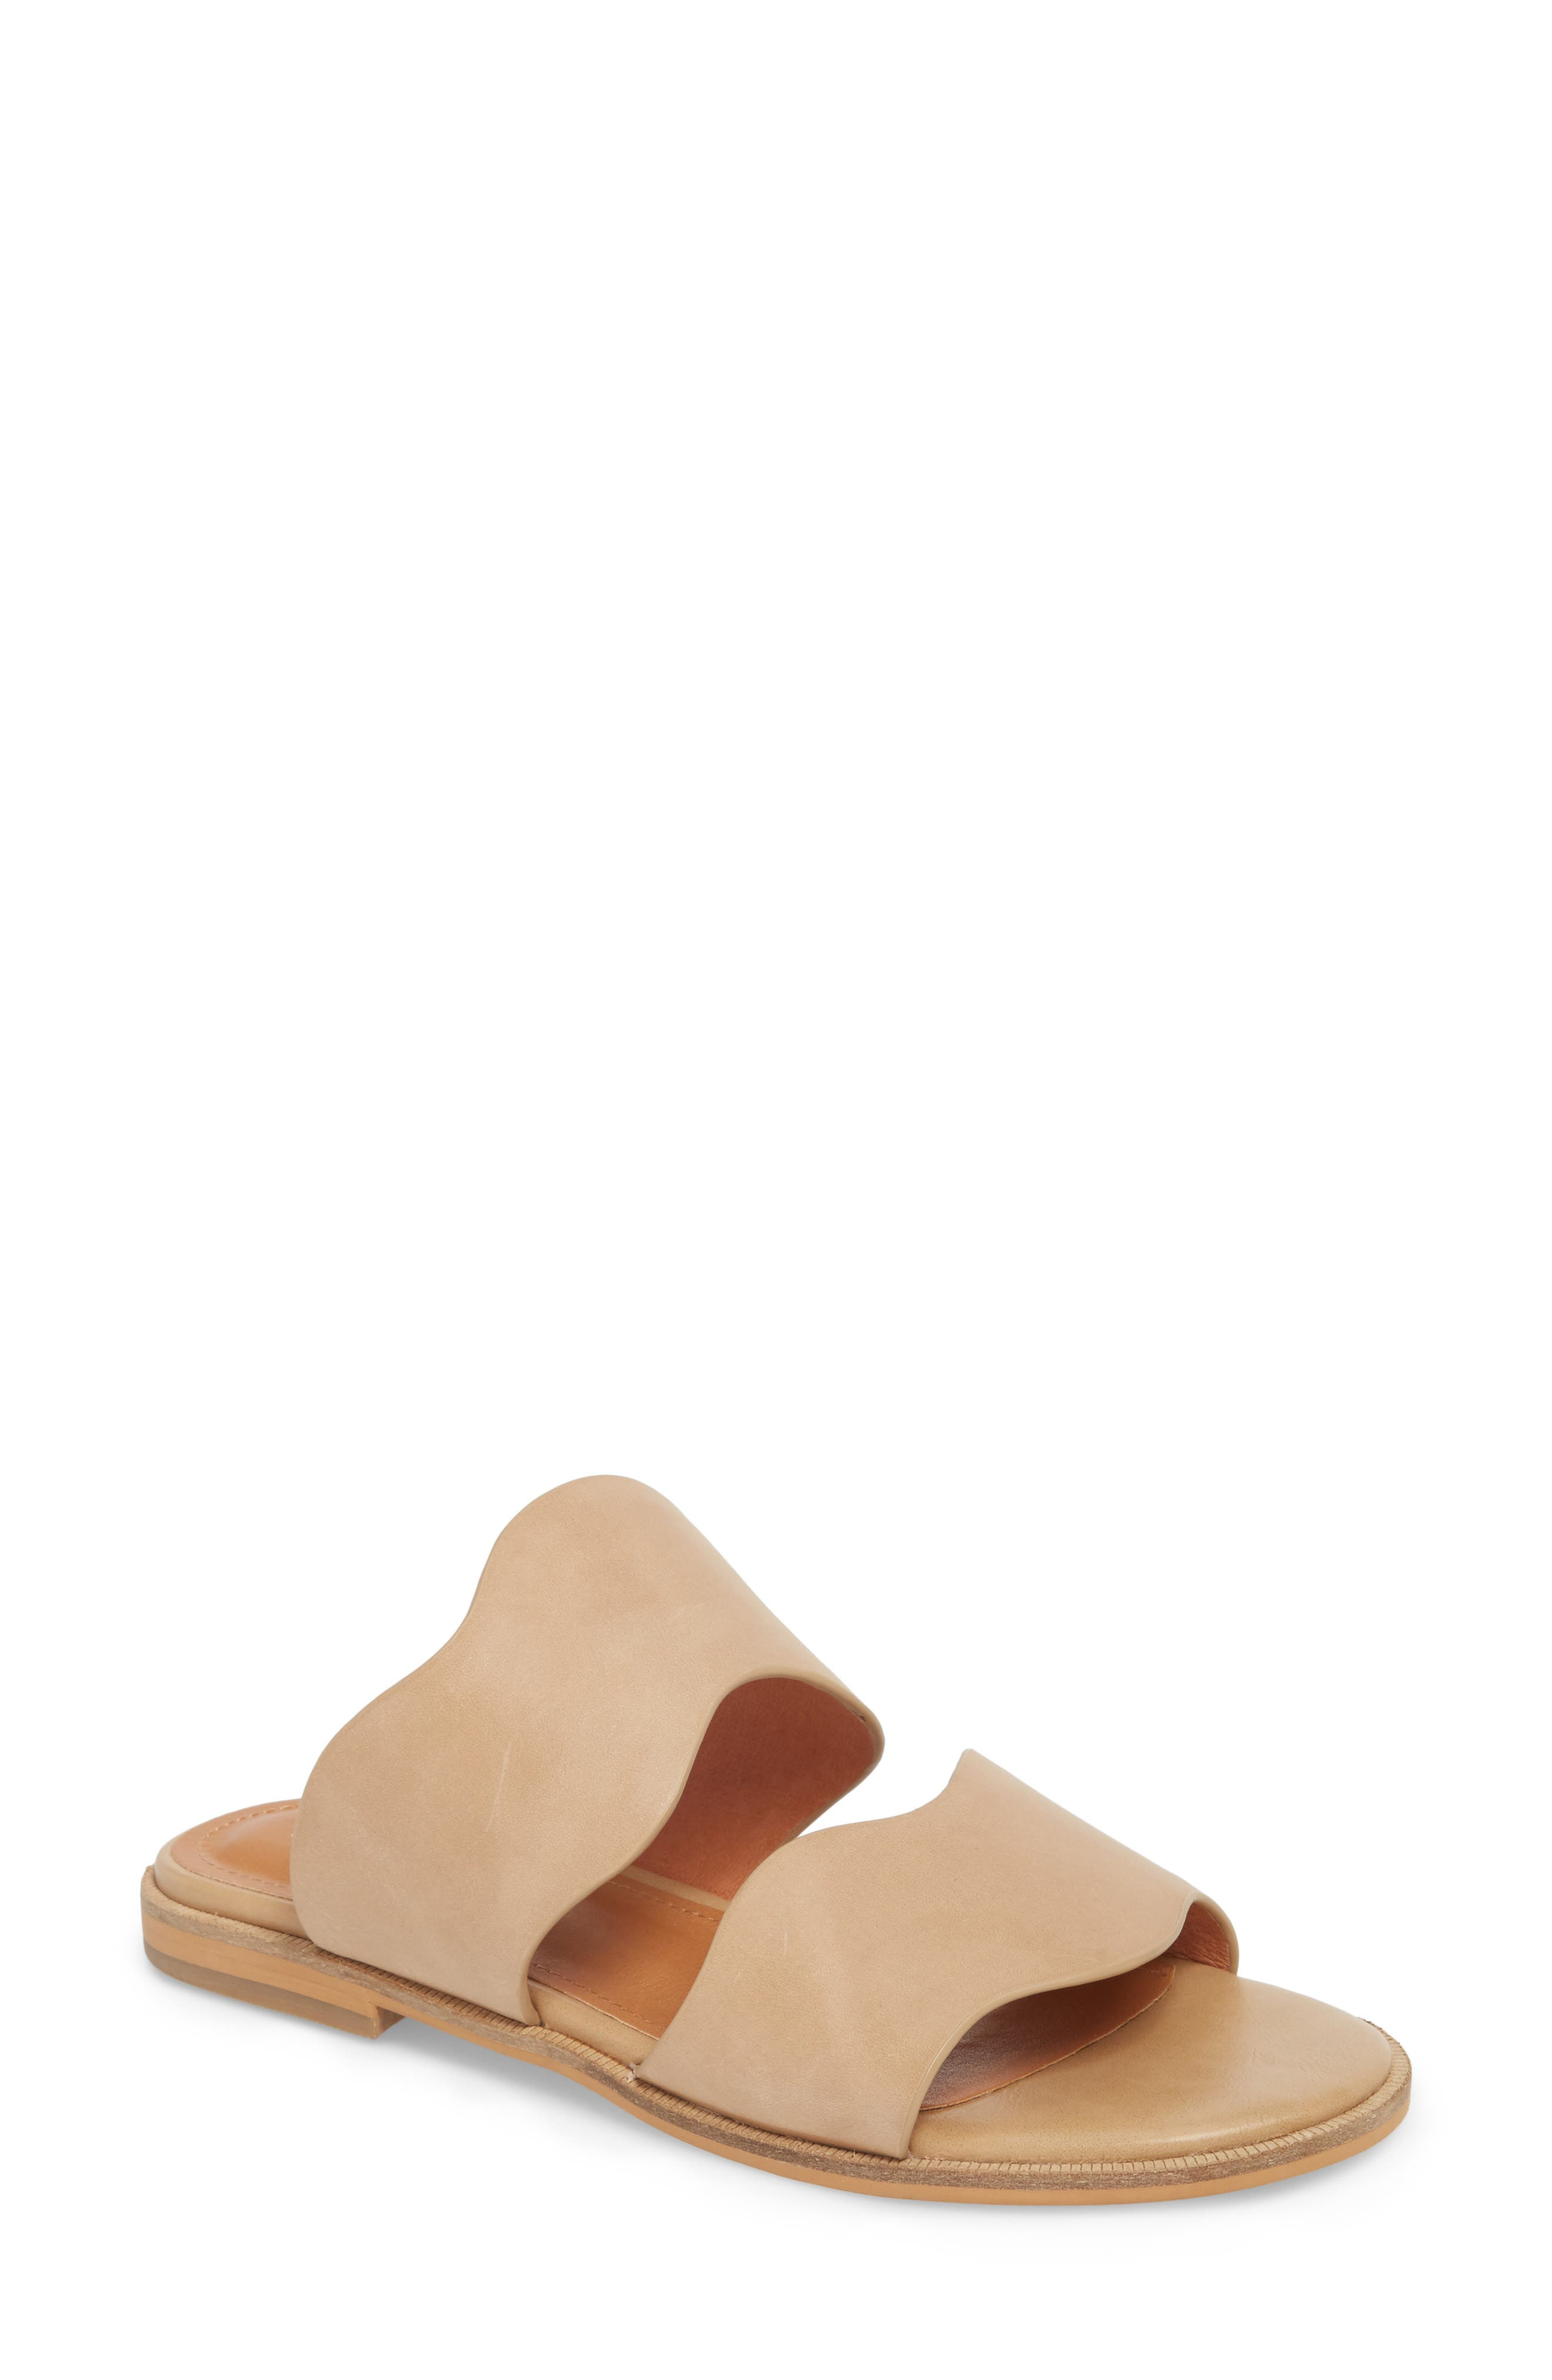 Thermos Scalloped Slide Sandal,                         Main,                         color, Natural Leather